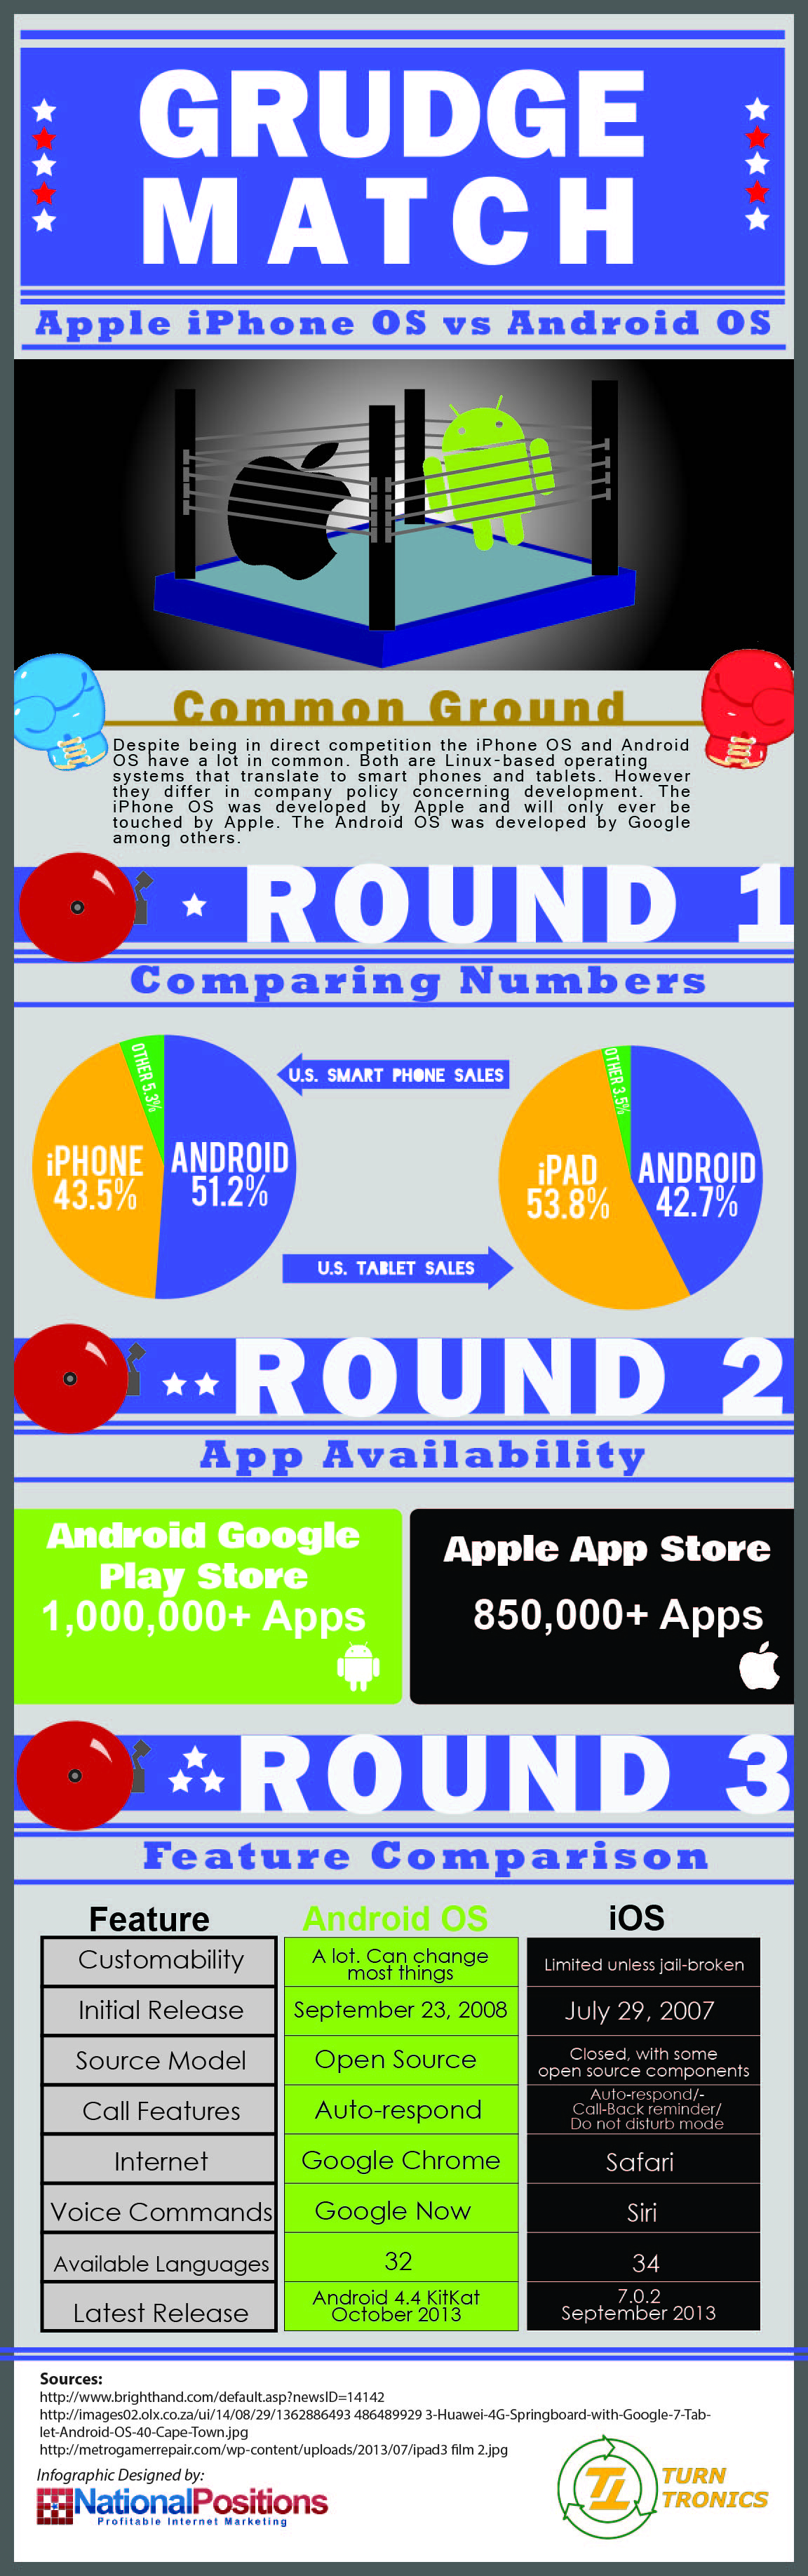 Uncategorized www google com br google chrome android - Iphone Os Vs Android Os